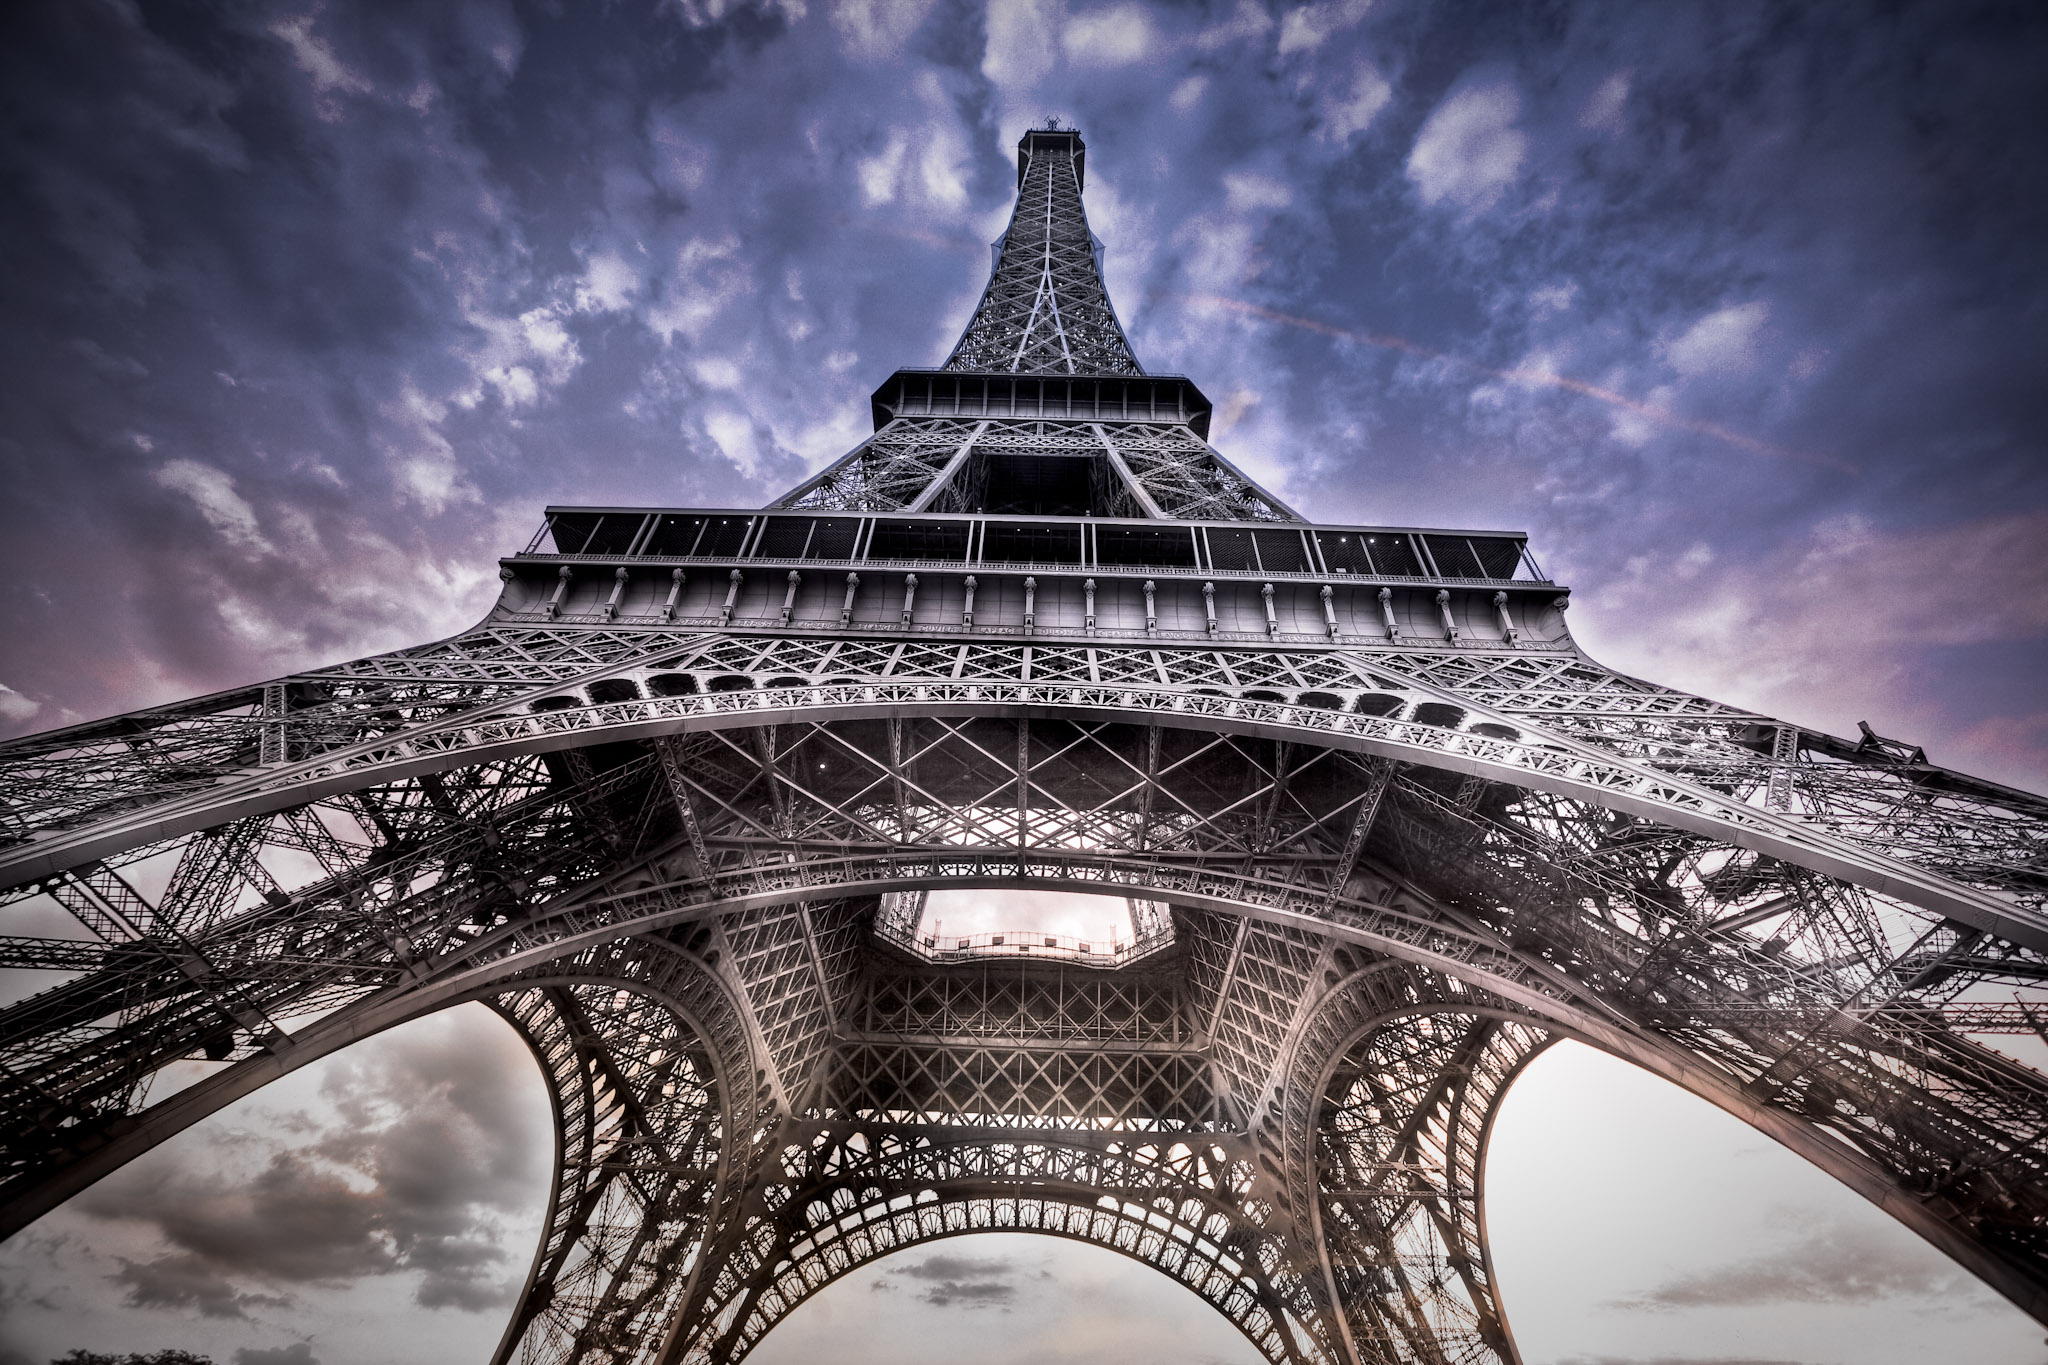 The first shot of the Eiffel Tower that I really liked